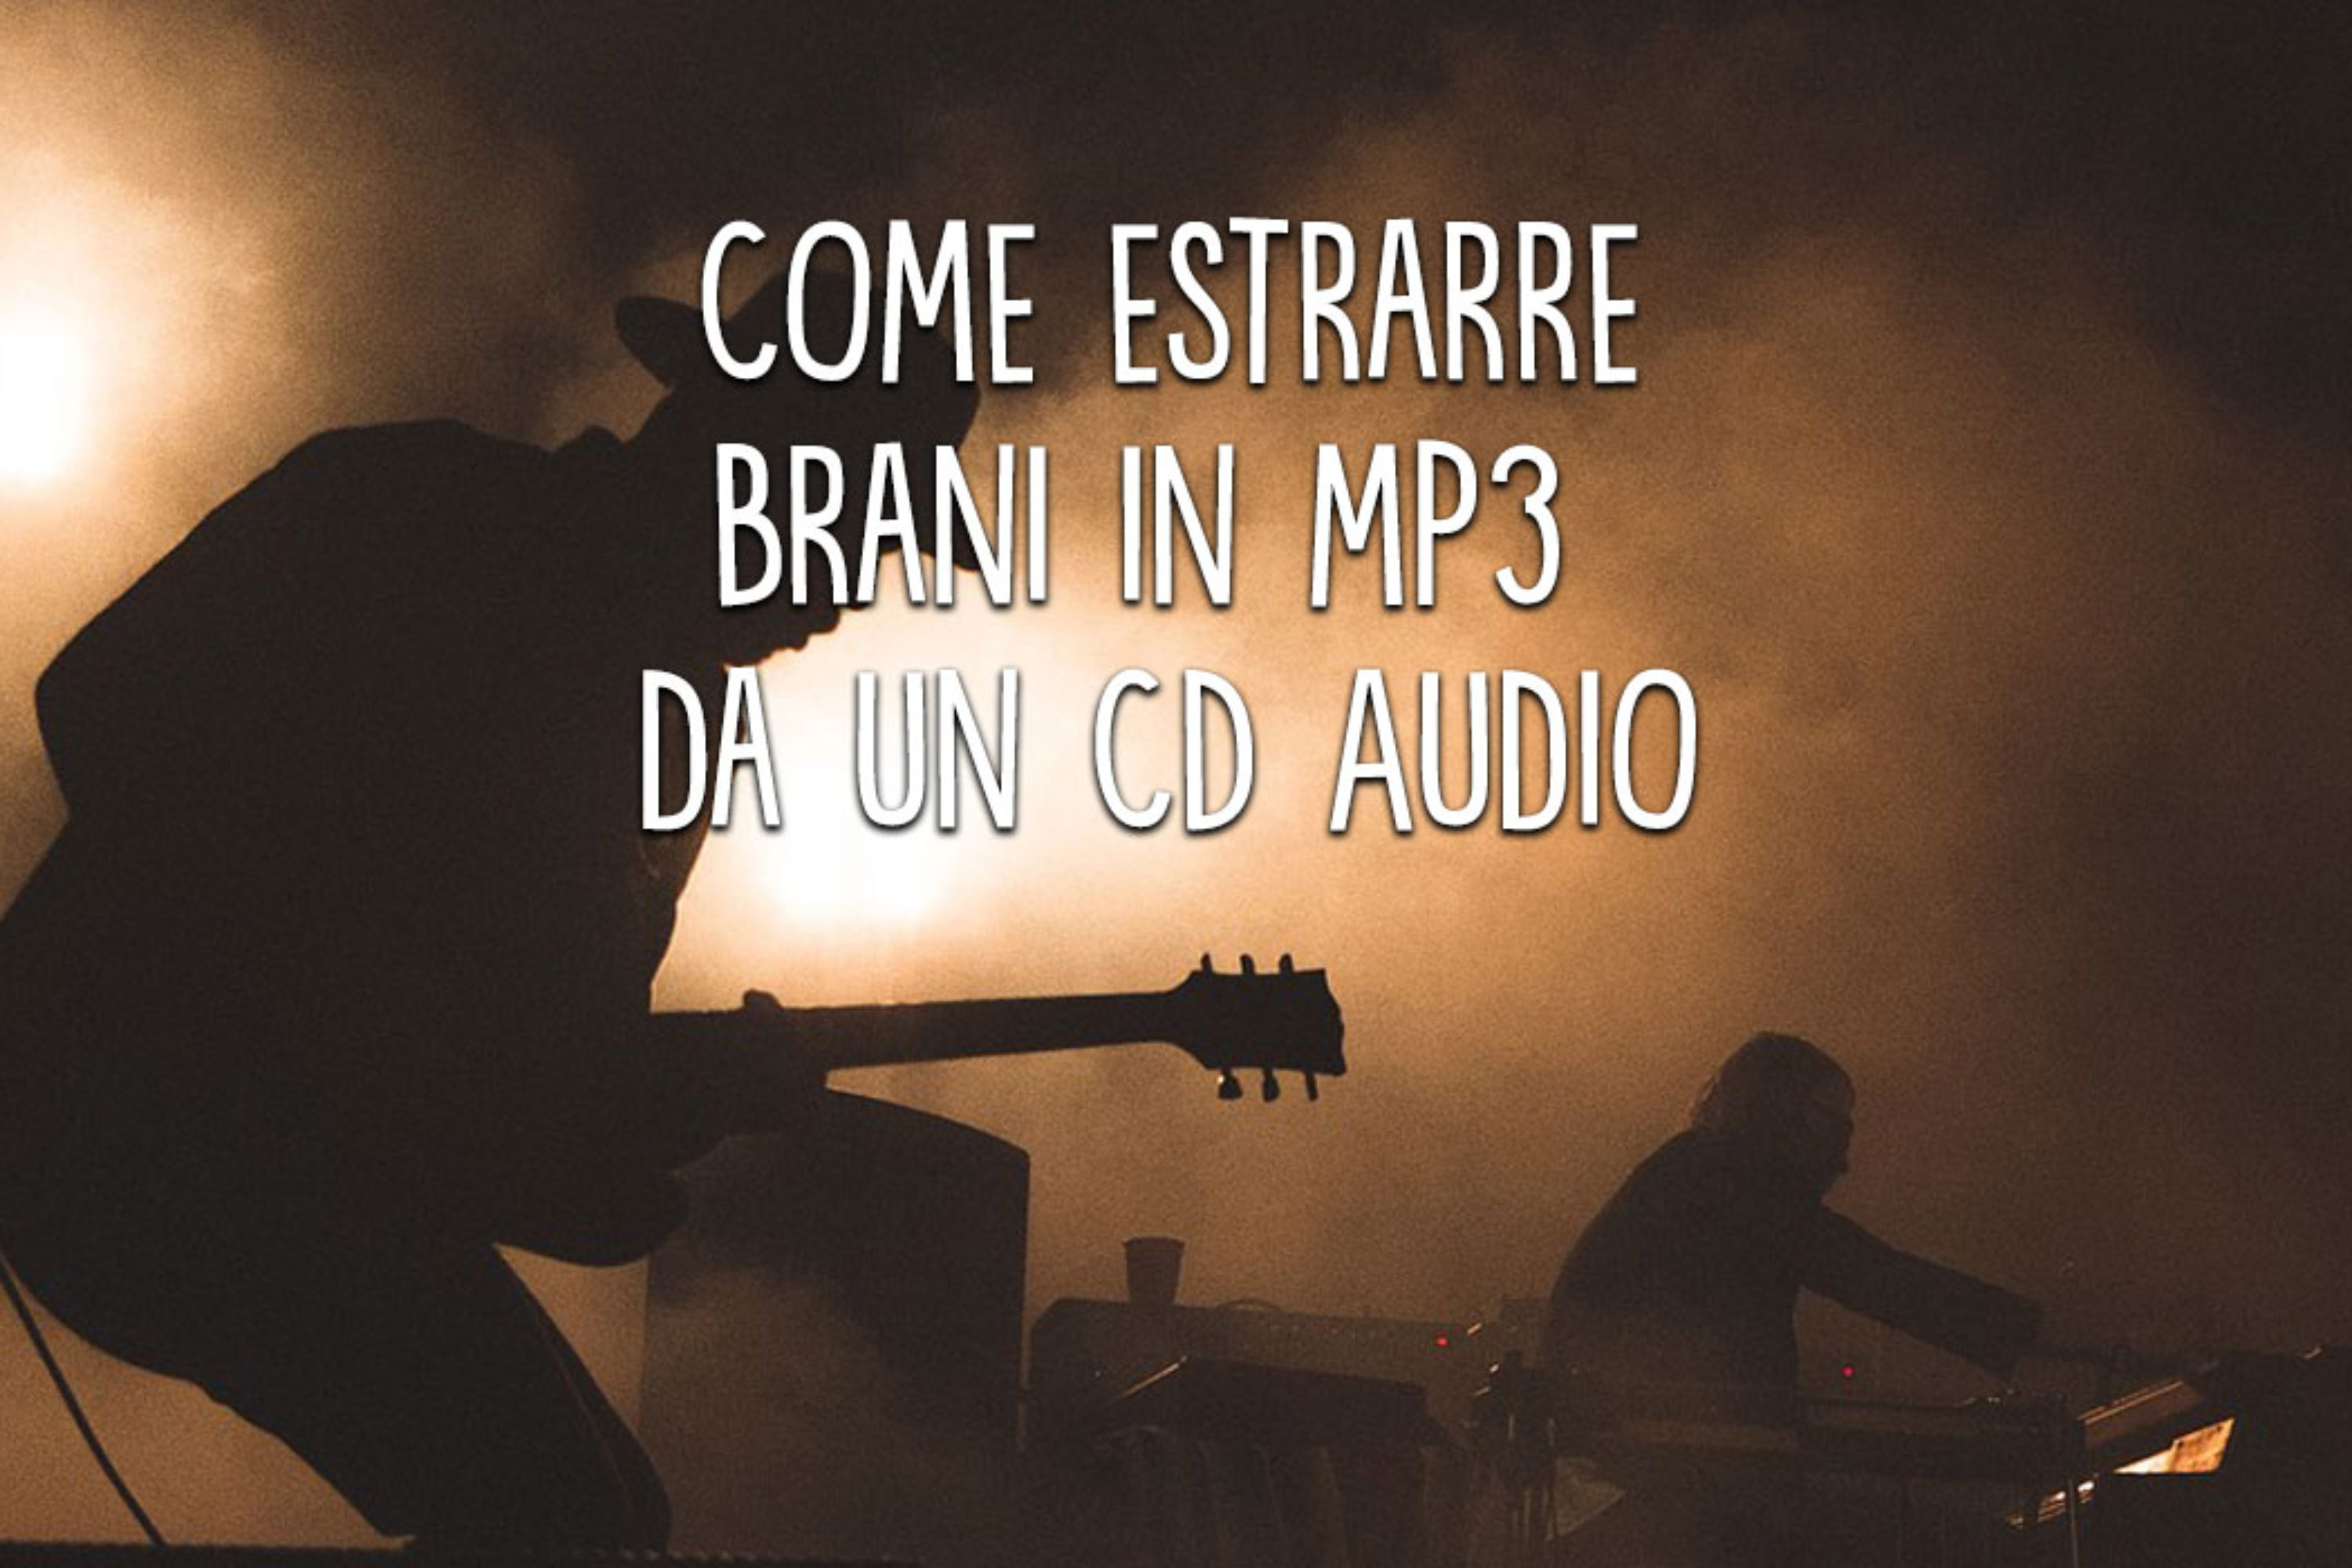 Come estrarre brani in mp3 da un CD Audio